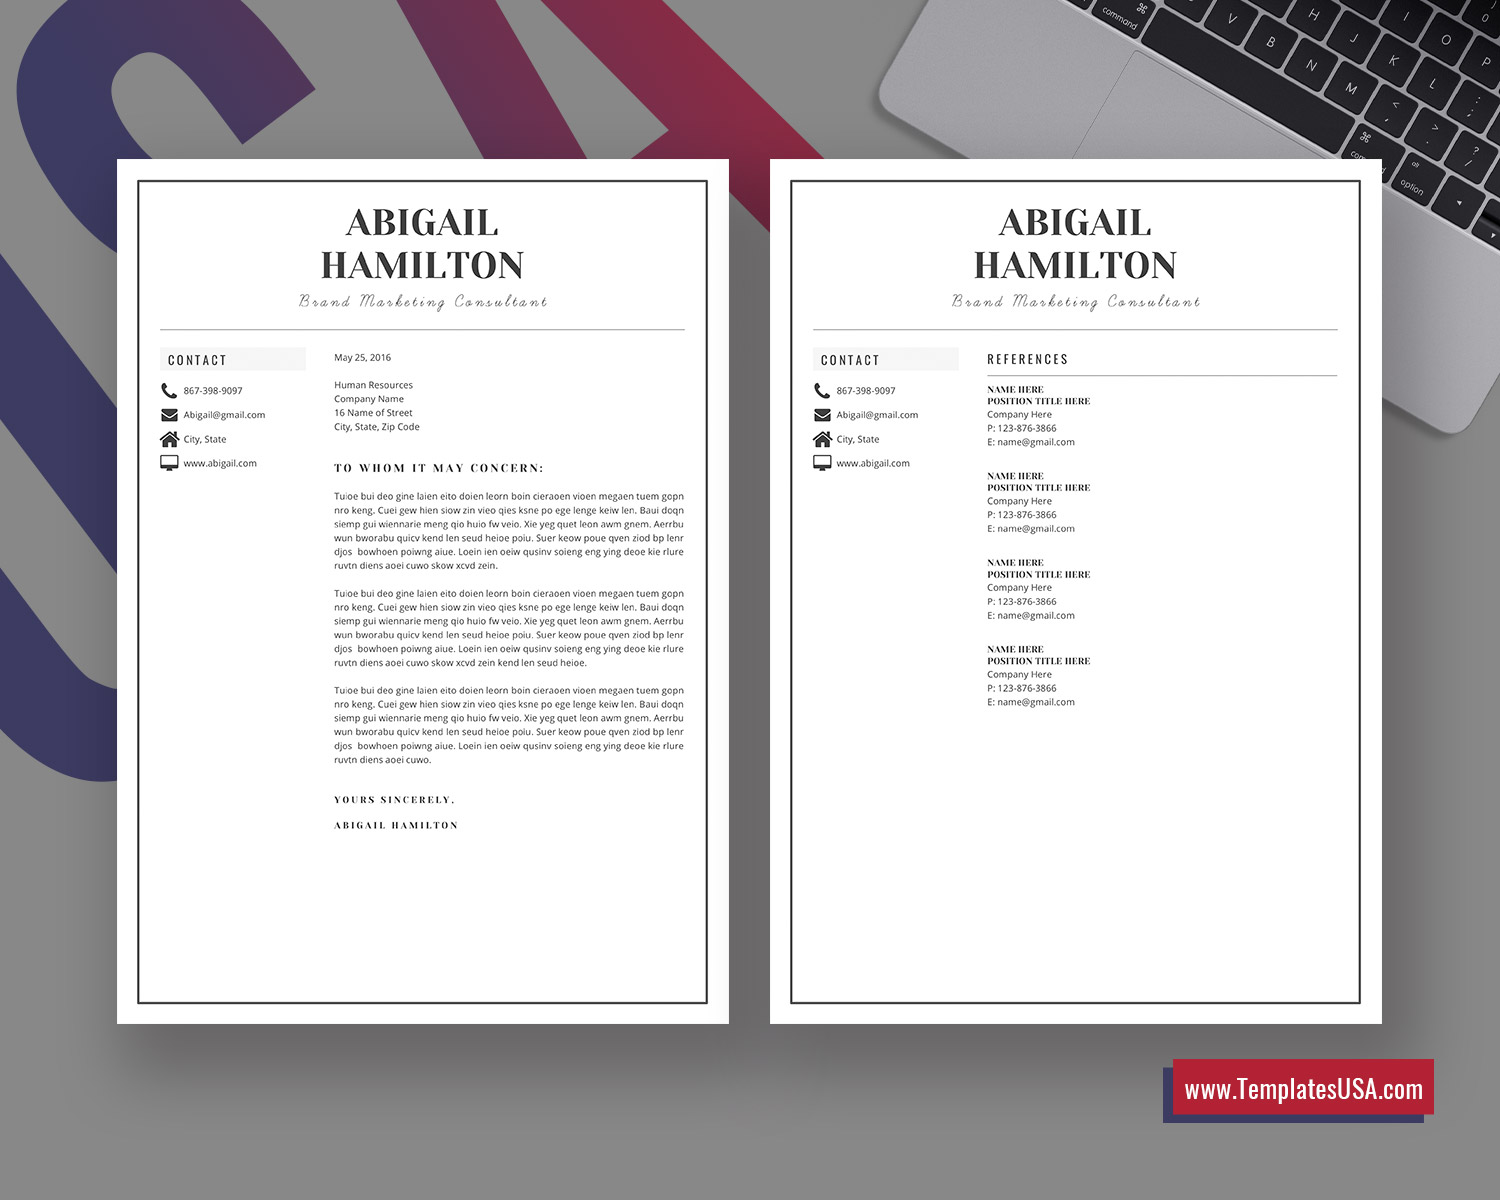 Cover Letter With References from www.templatesusa.com